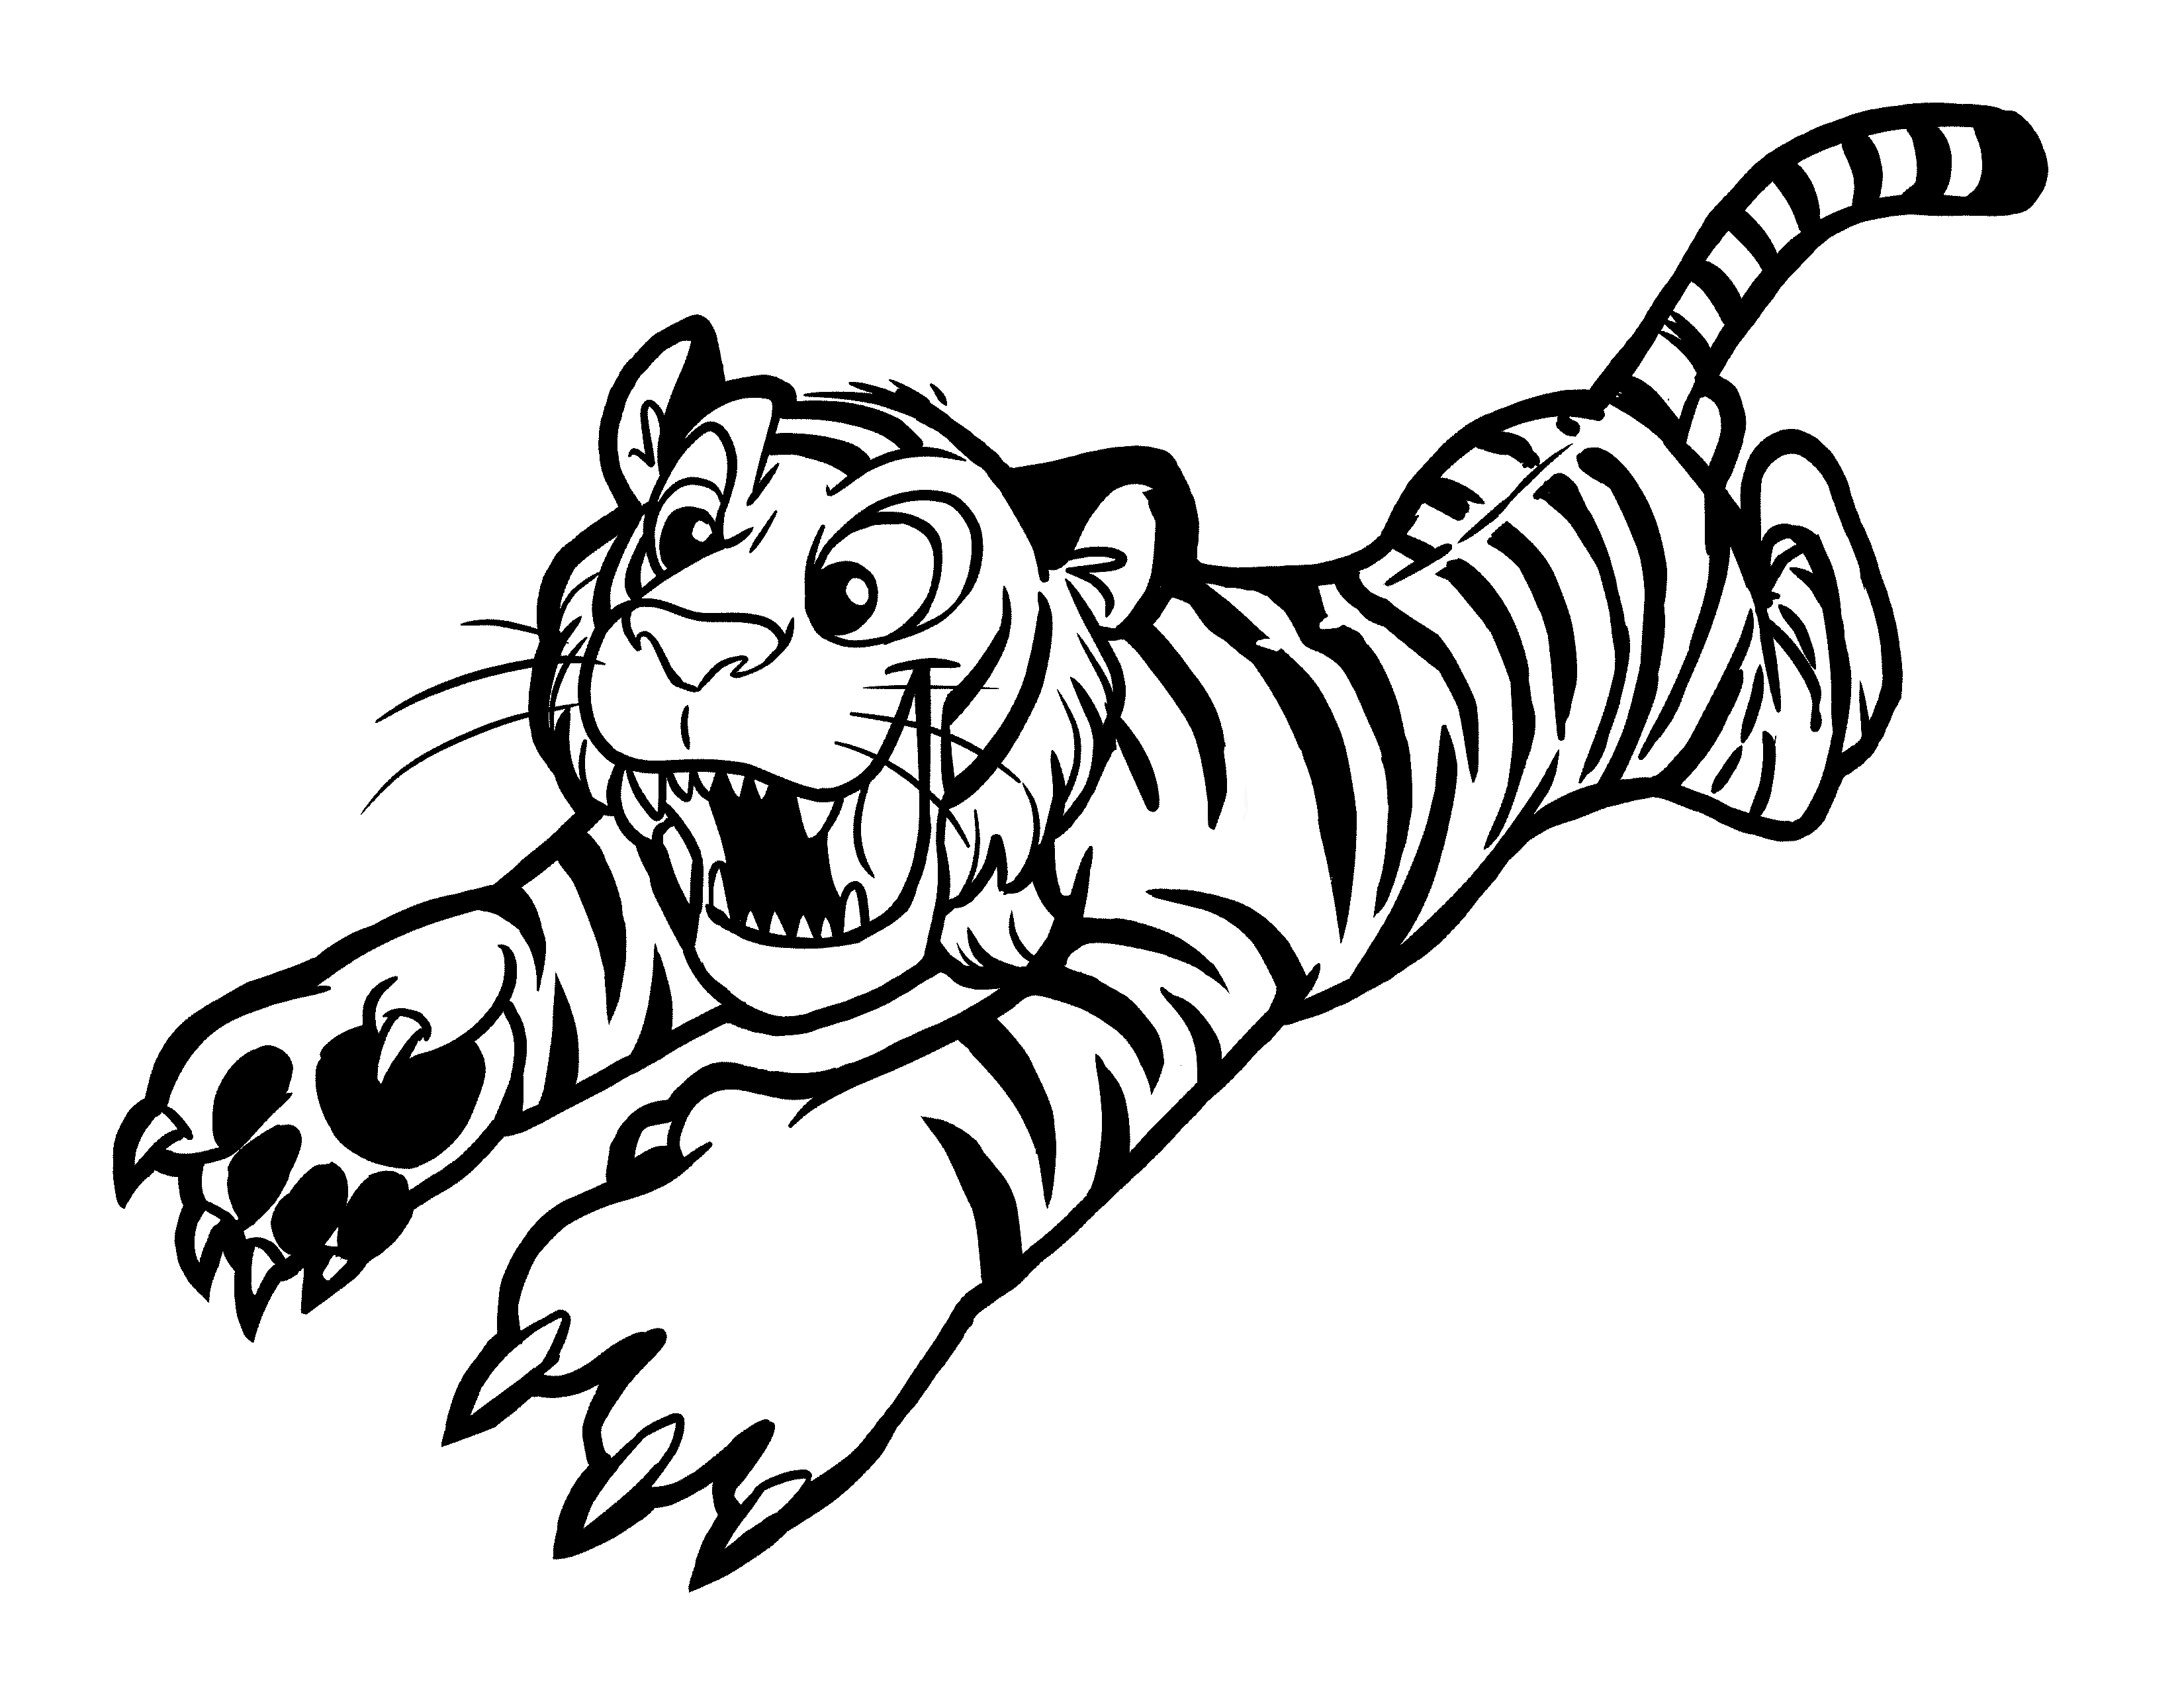 tiger coloring book pages free printable tiger coloring pages for kids book pages coloring tiger